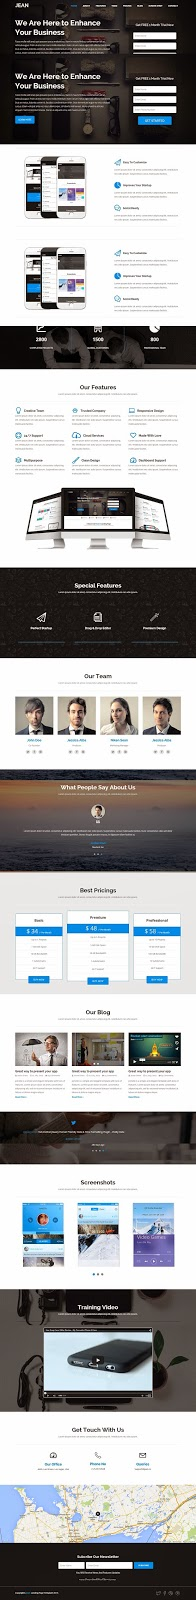 Best Startup Landing Page Template